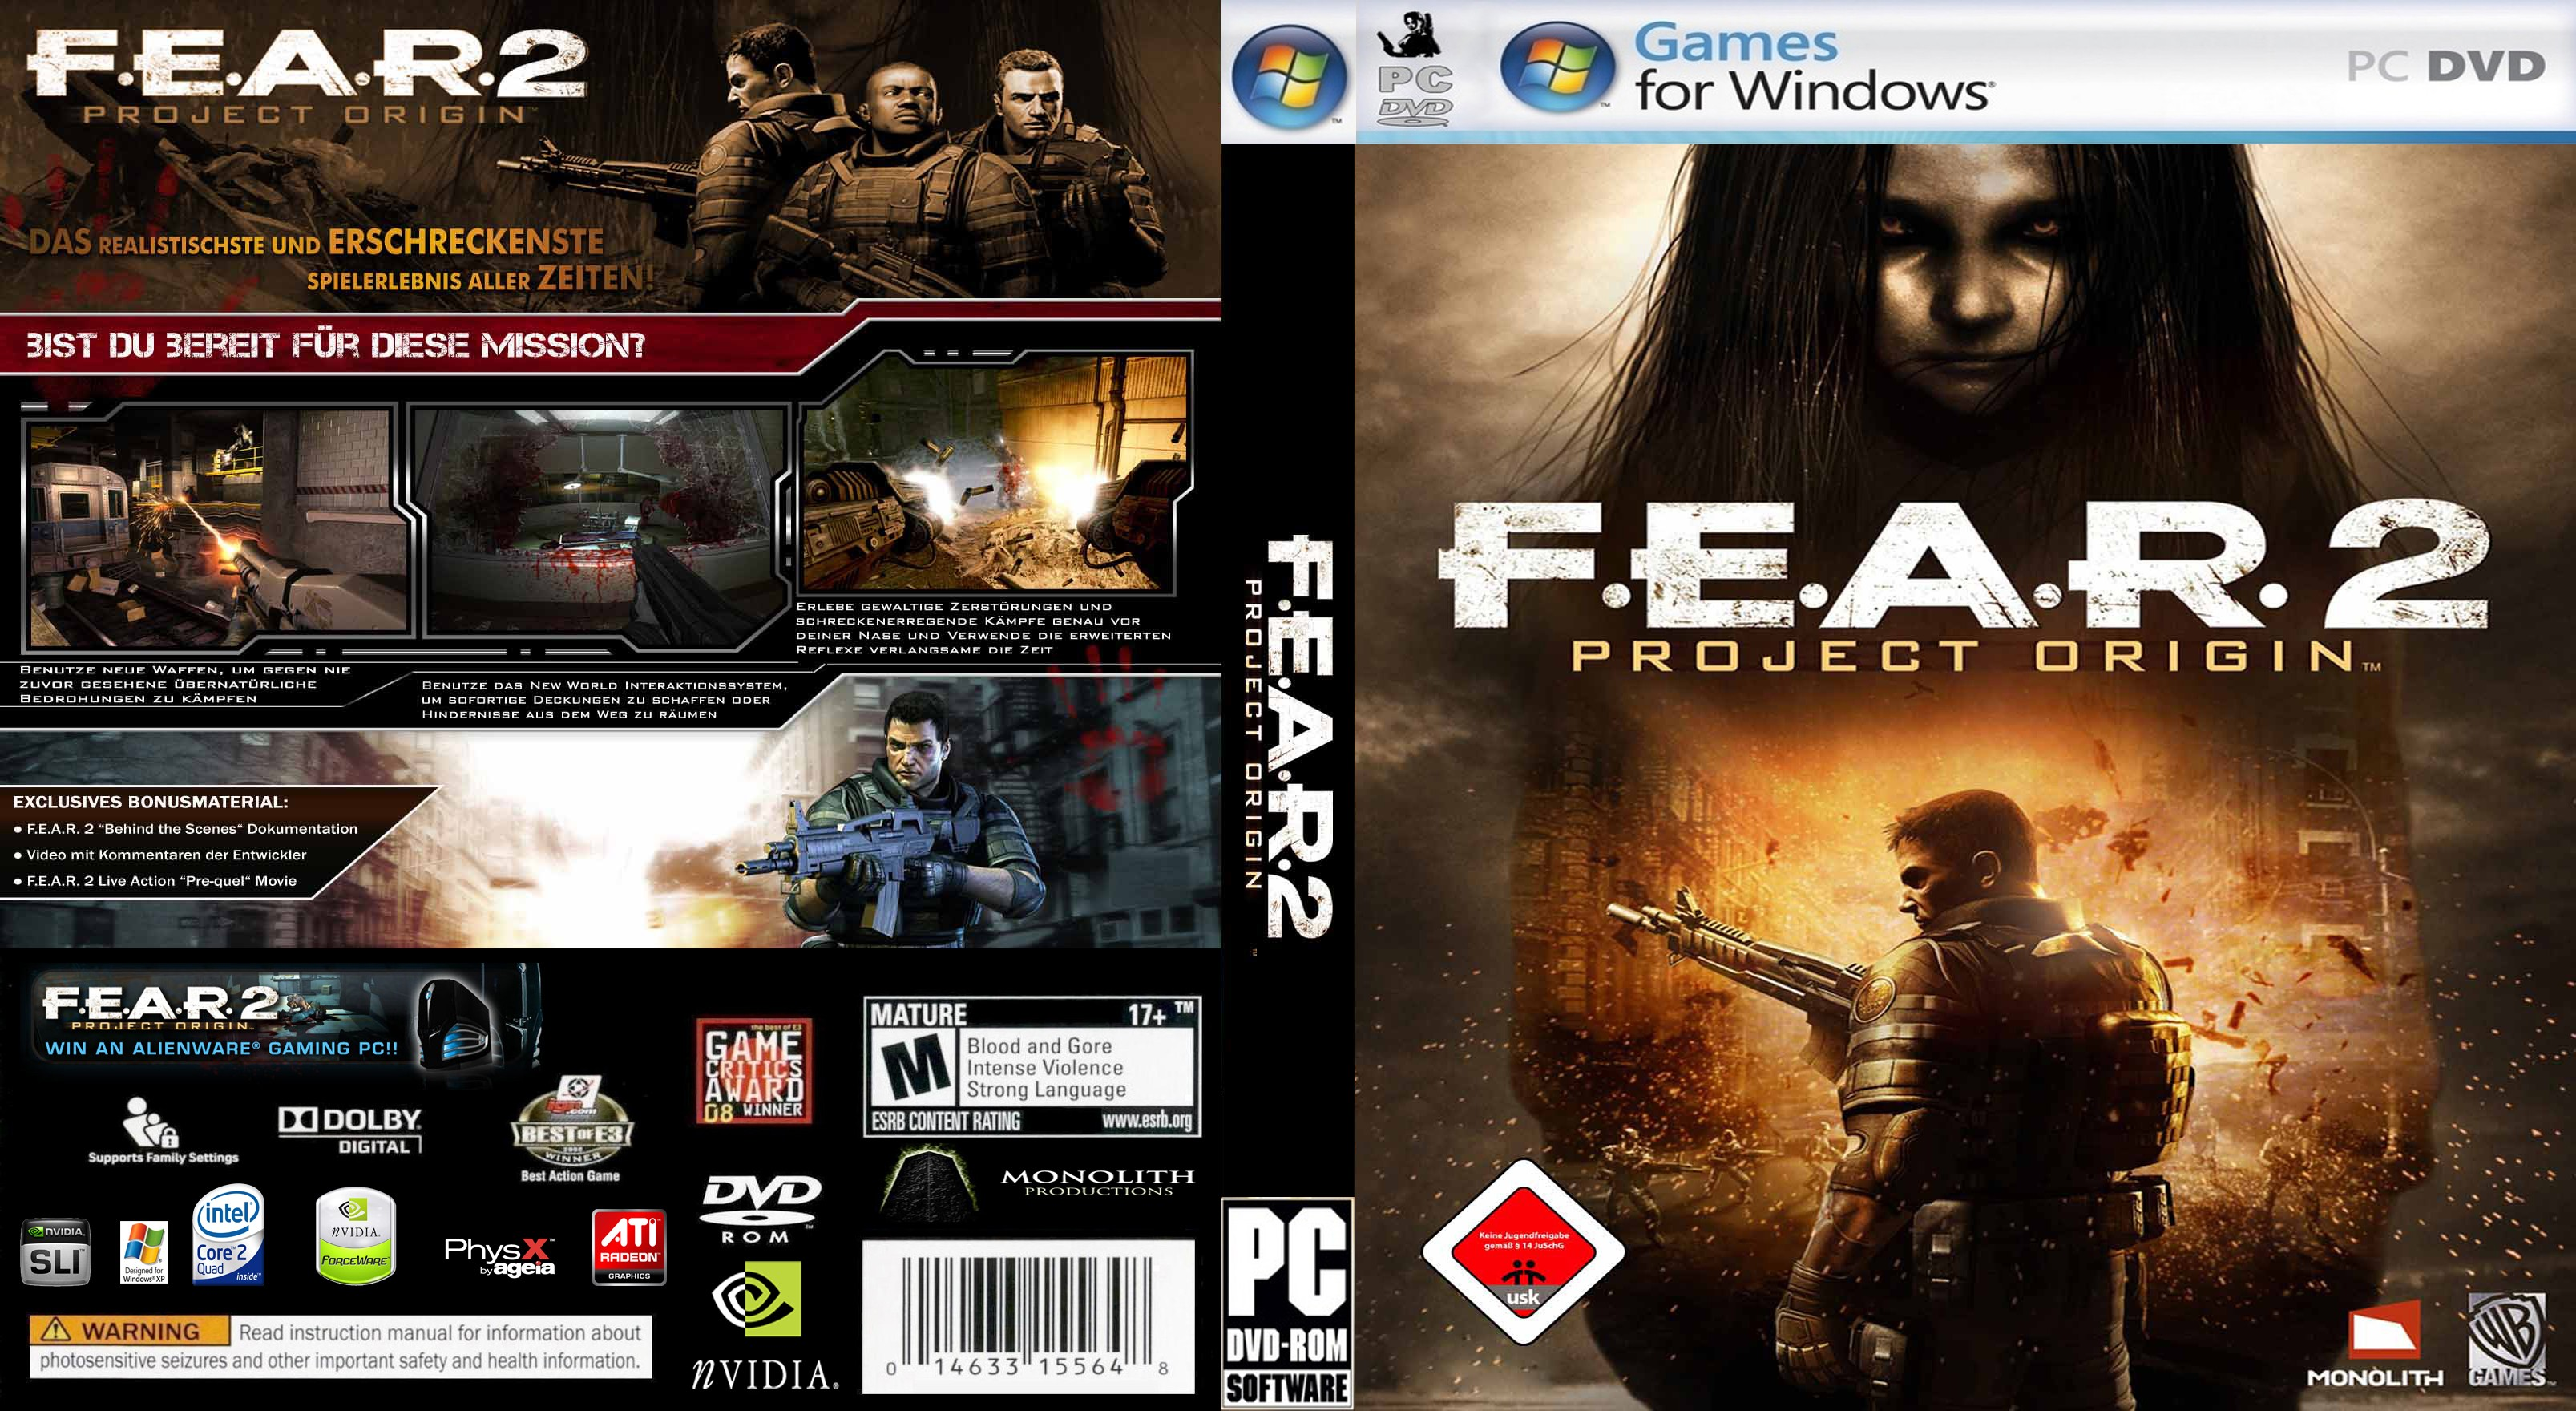 Fear 2 Project Origin Gamerzline on WordPress.com.